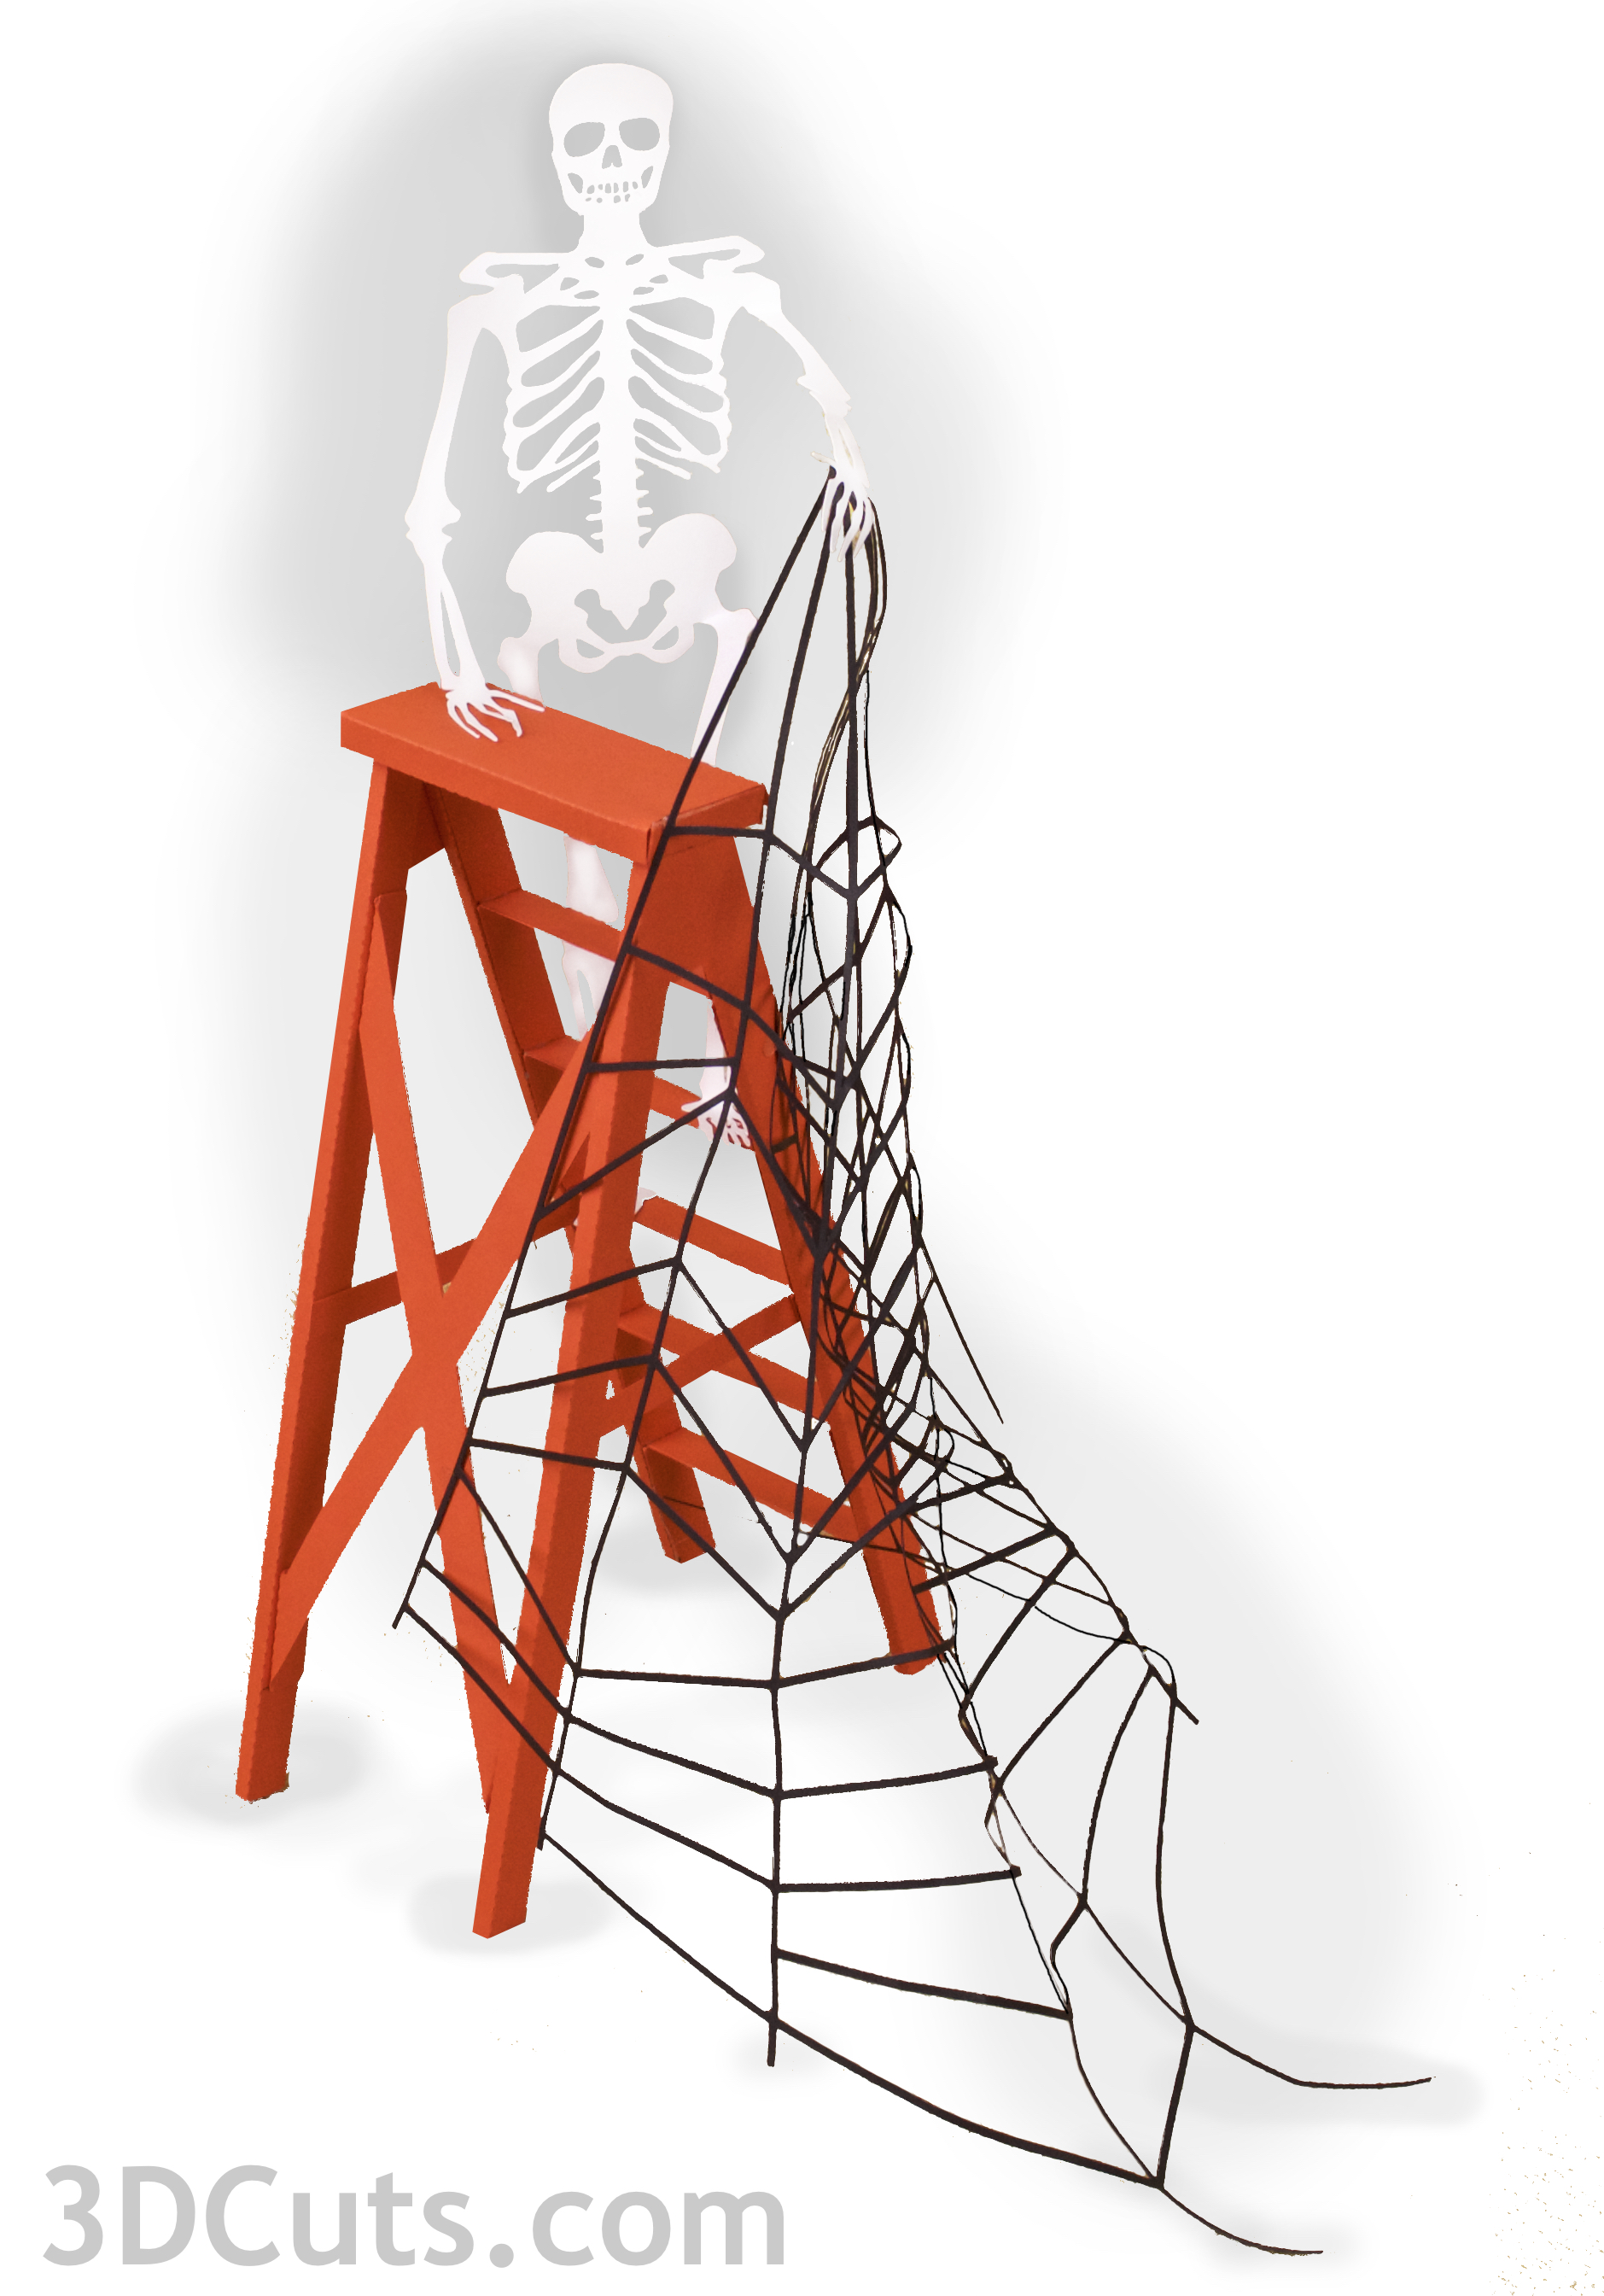 Combine the ladder file with a new web file available at http://3dcuts.com/halloween for more interesting arrangements.